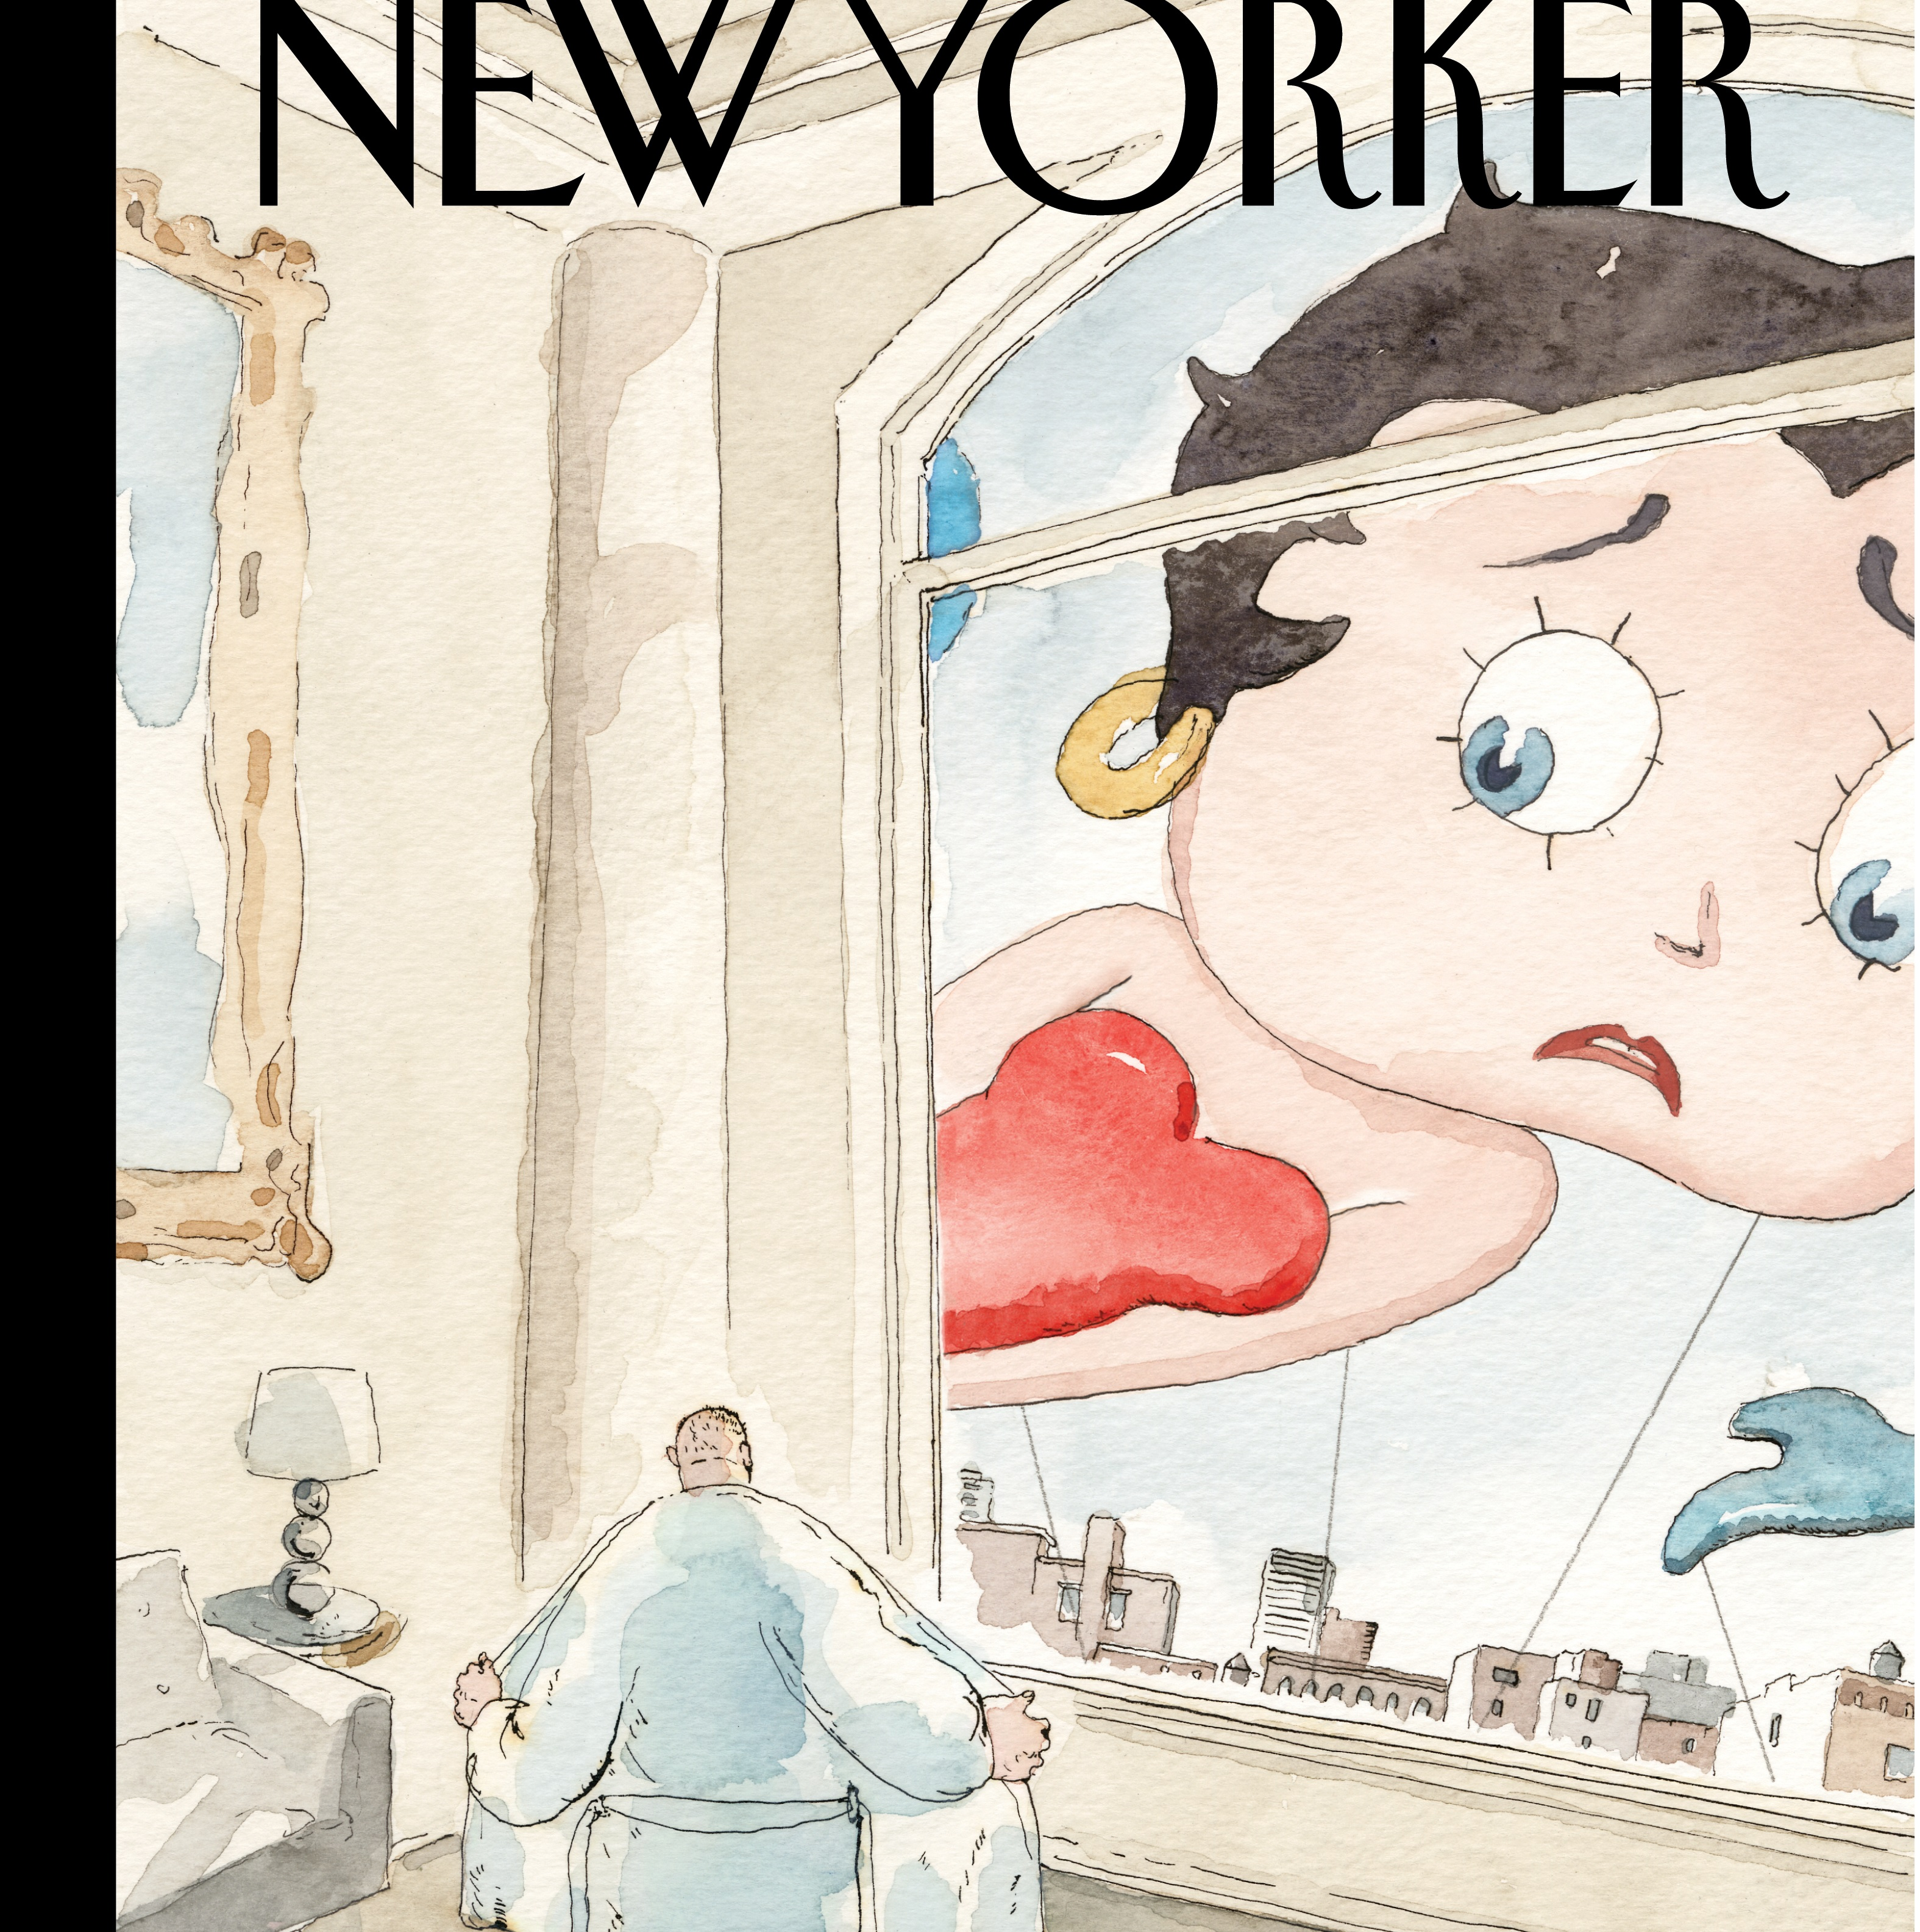 new yorker cover hits harassment theme